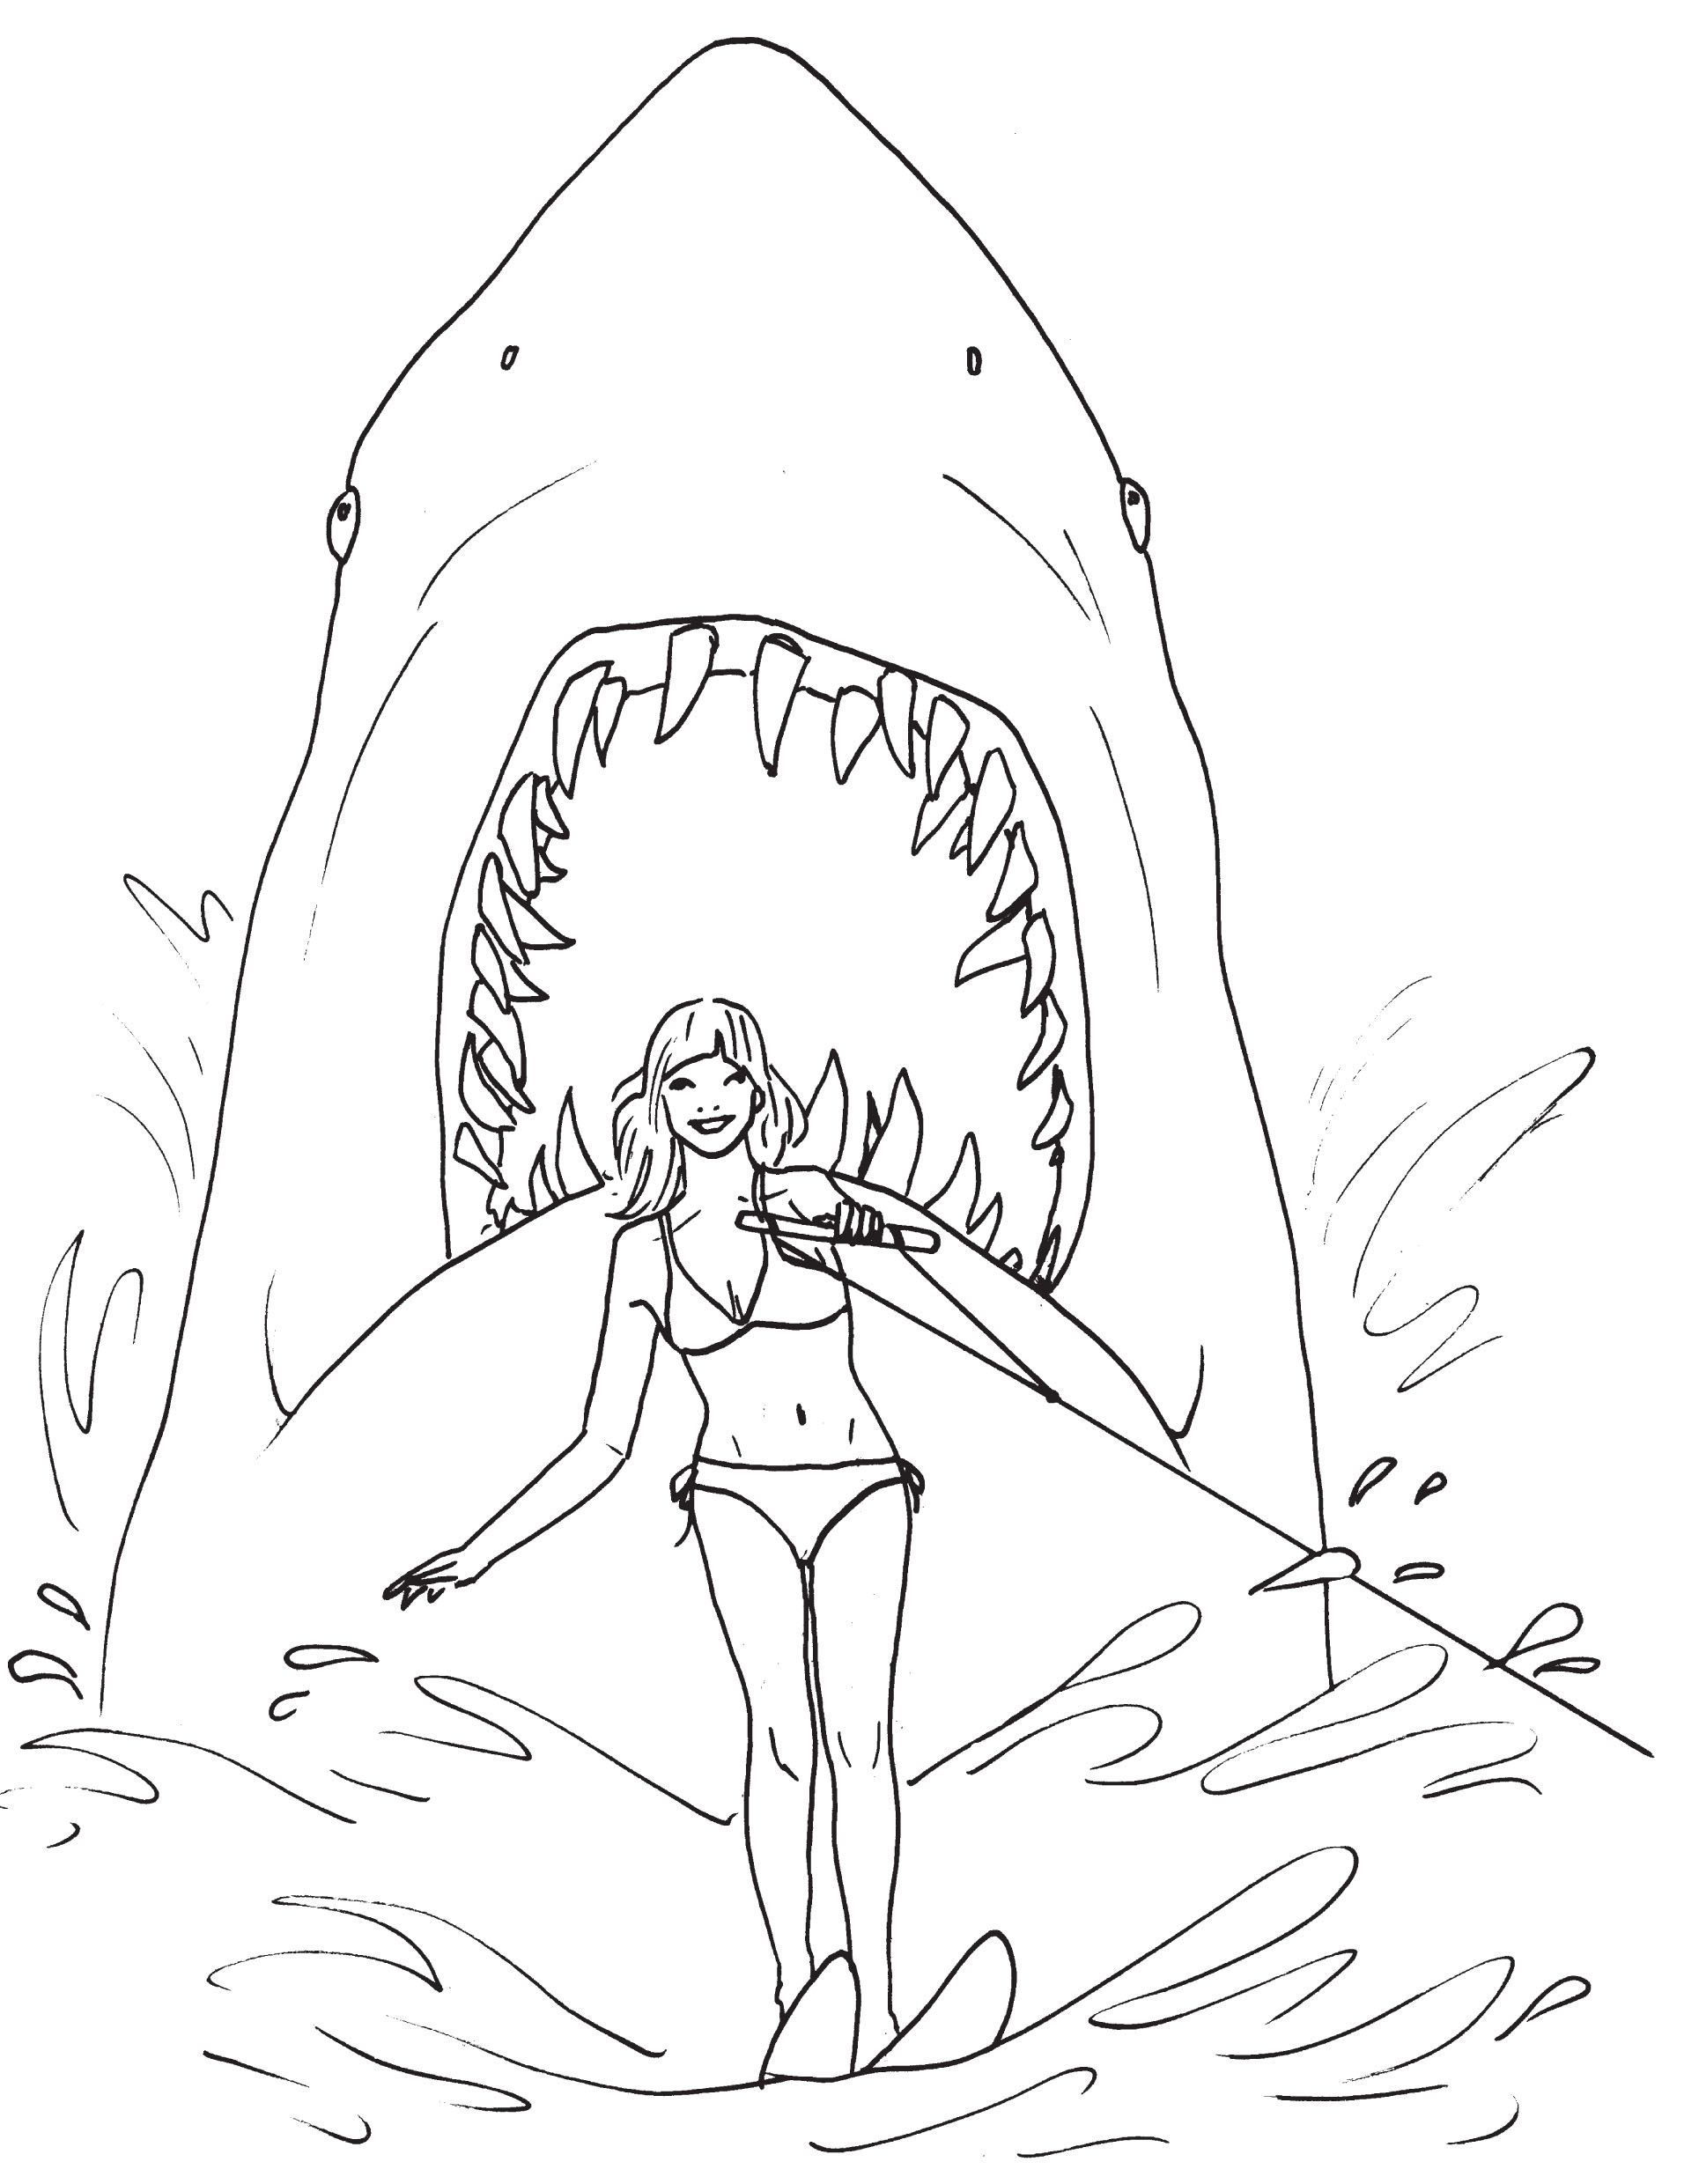 Fantastic Great White Shark Attack Coloring Page Shark Coloring